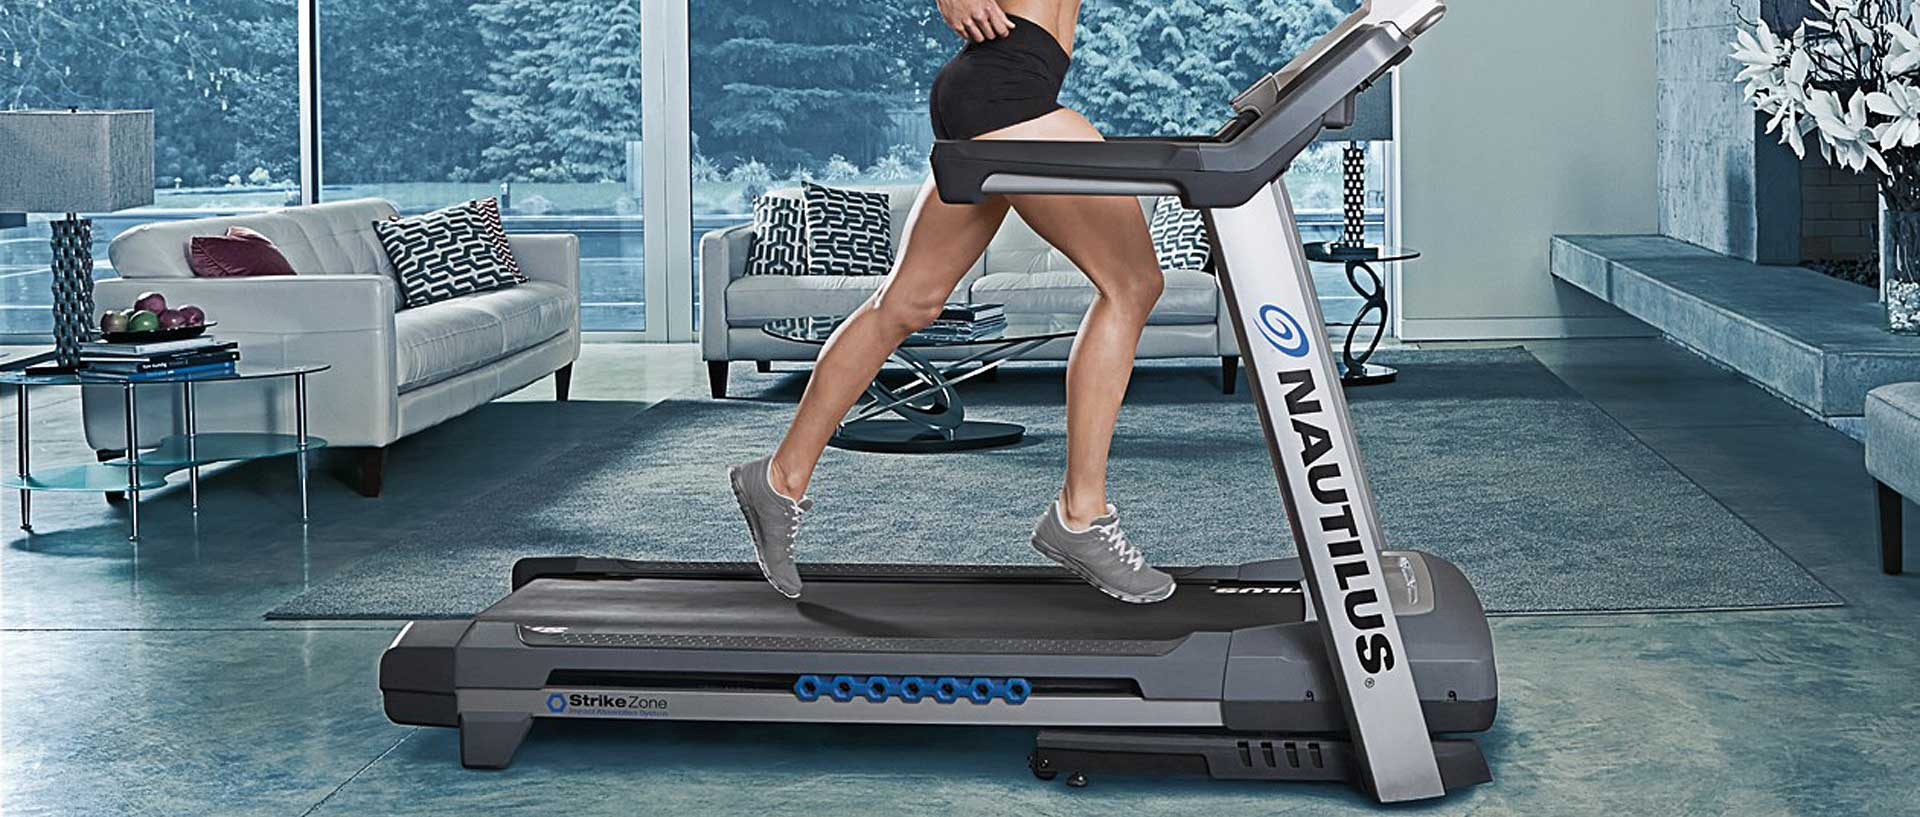 Low-Cost Treadmills With High-Tech Features